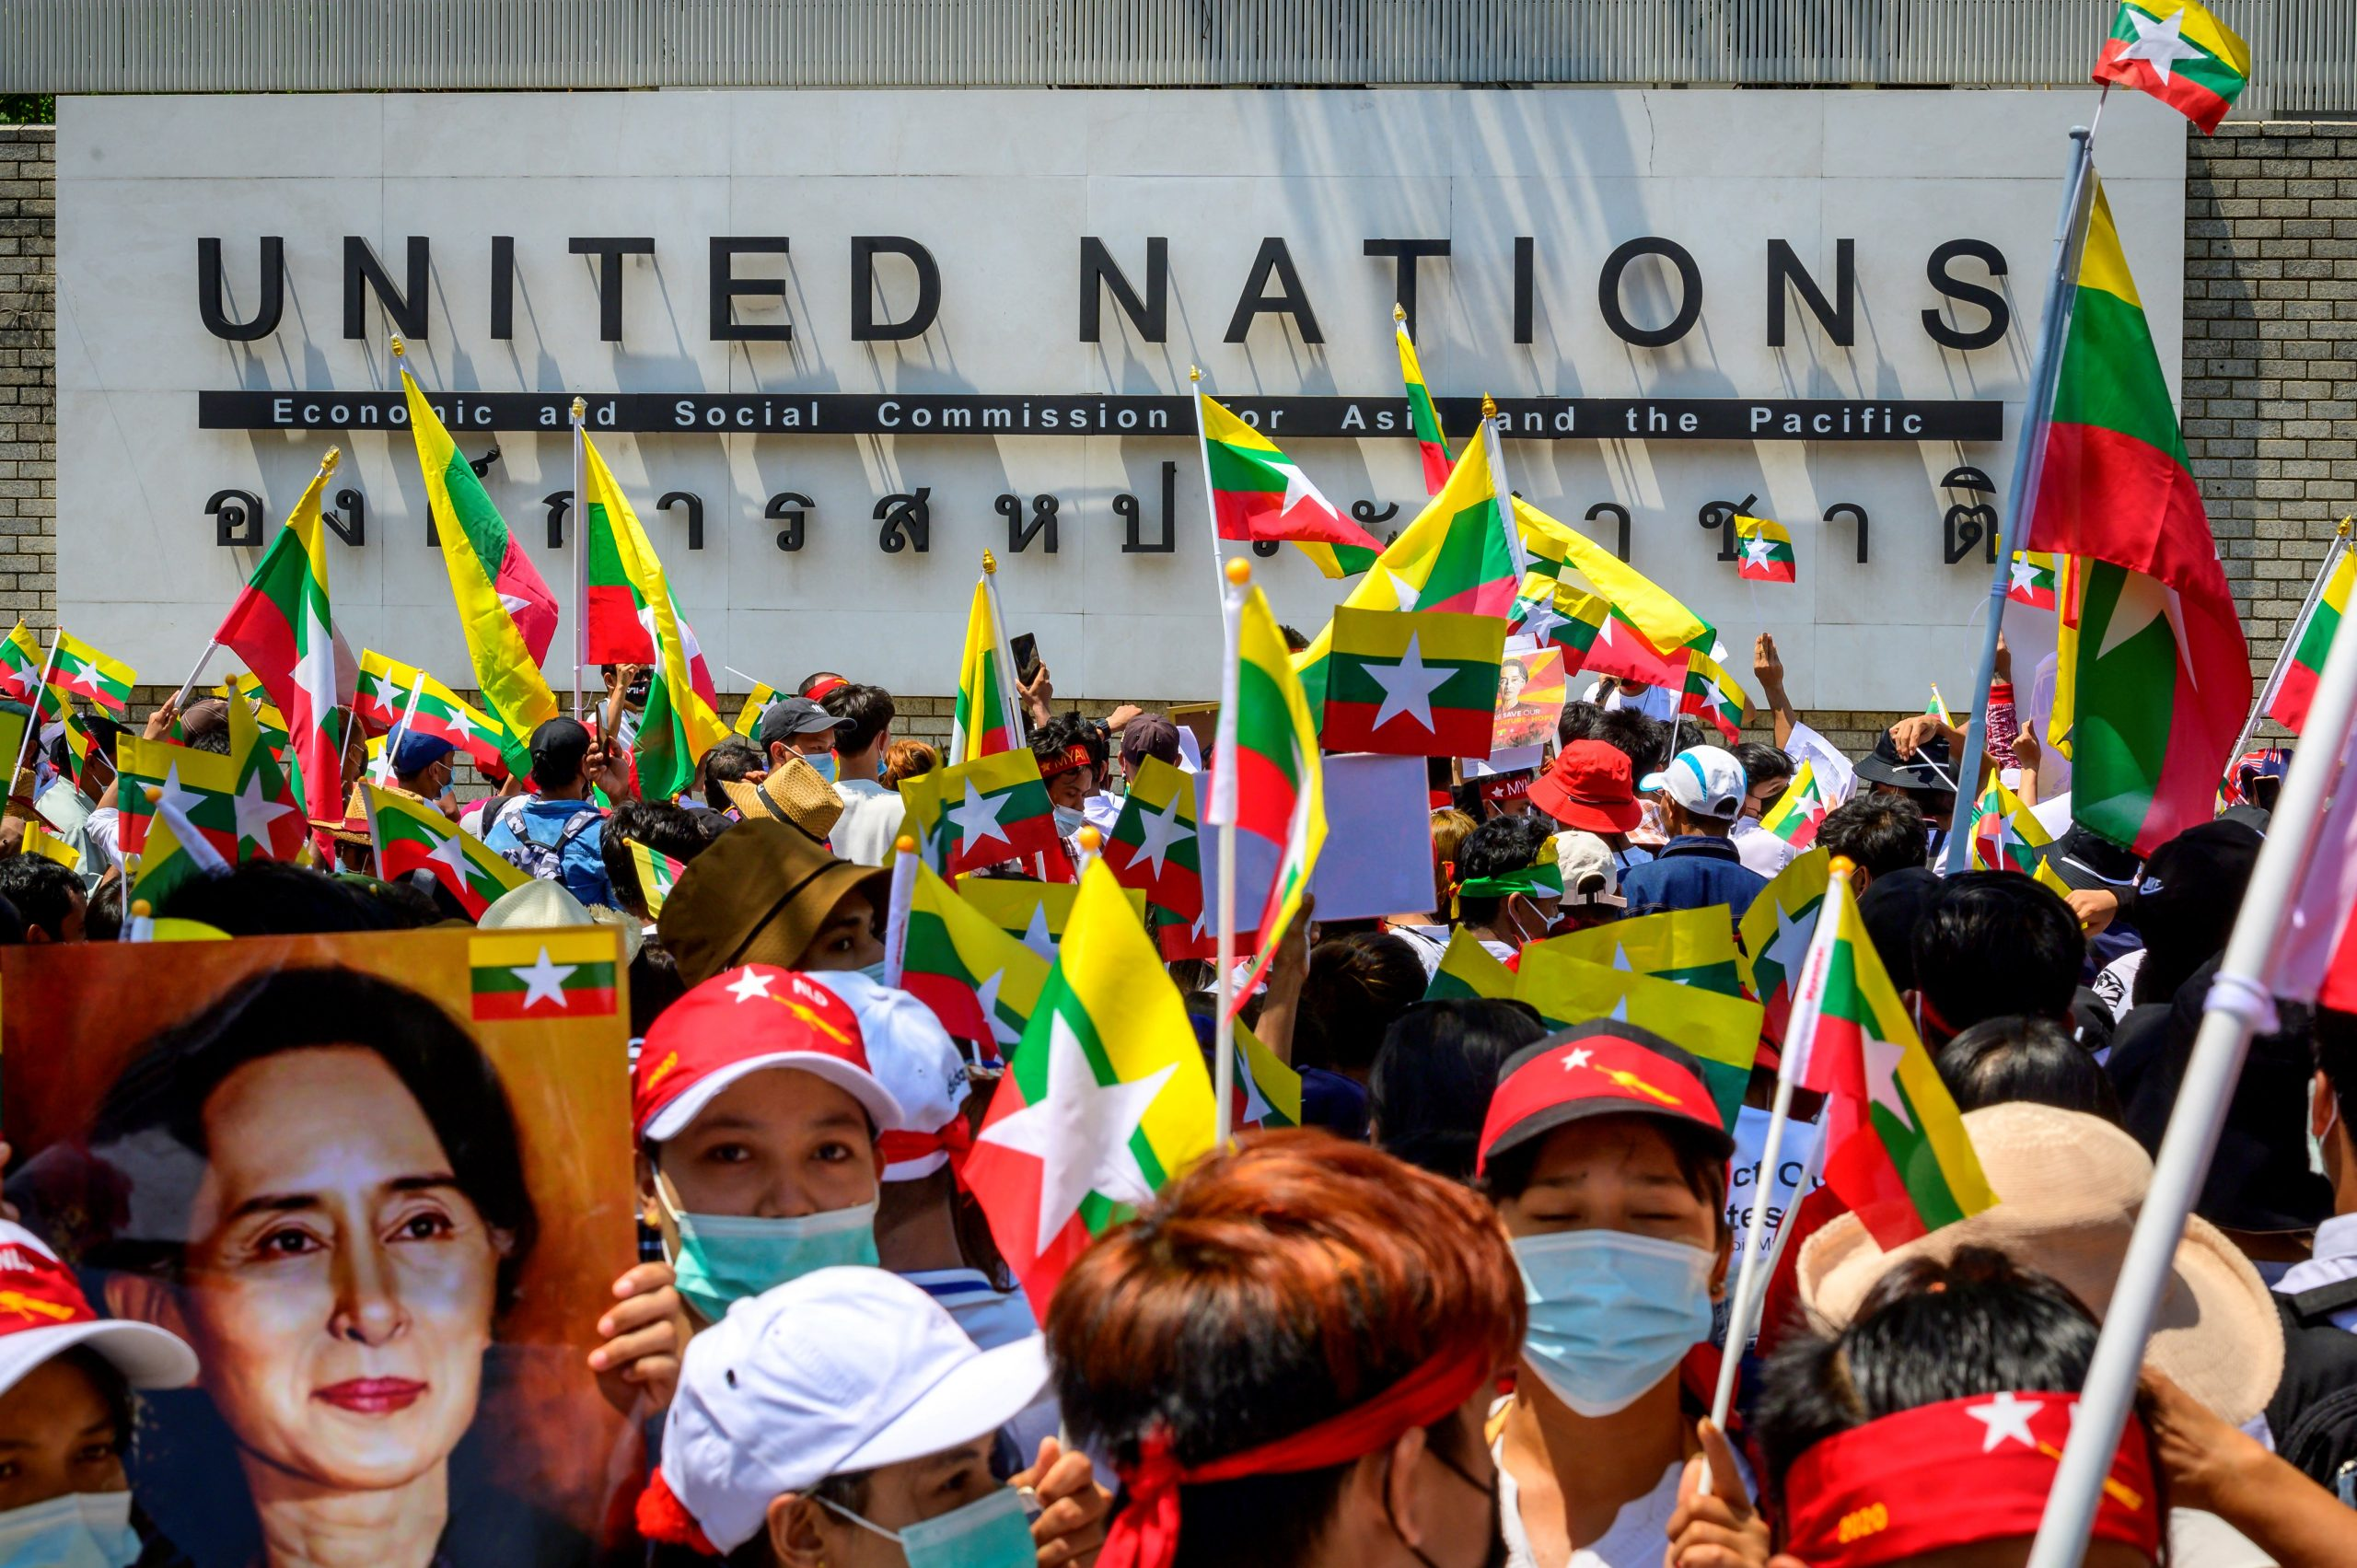 Myanmar migrants in Thailand protesting against the military coup in front of the United Nations ESCAP building in Bangkok on March 7, 2021. (AFP)